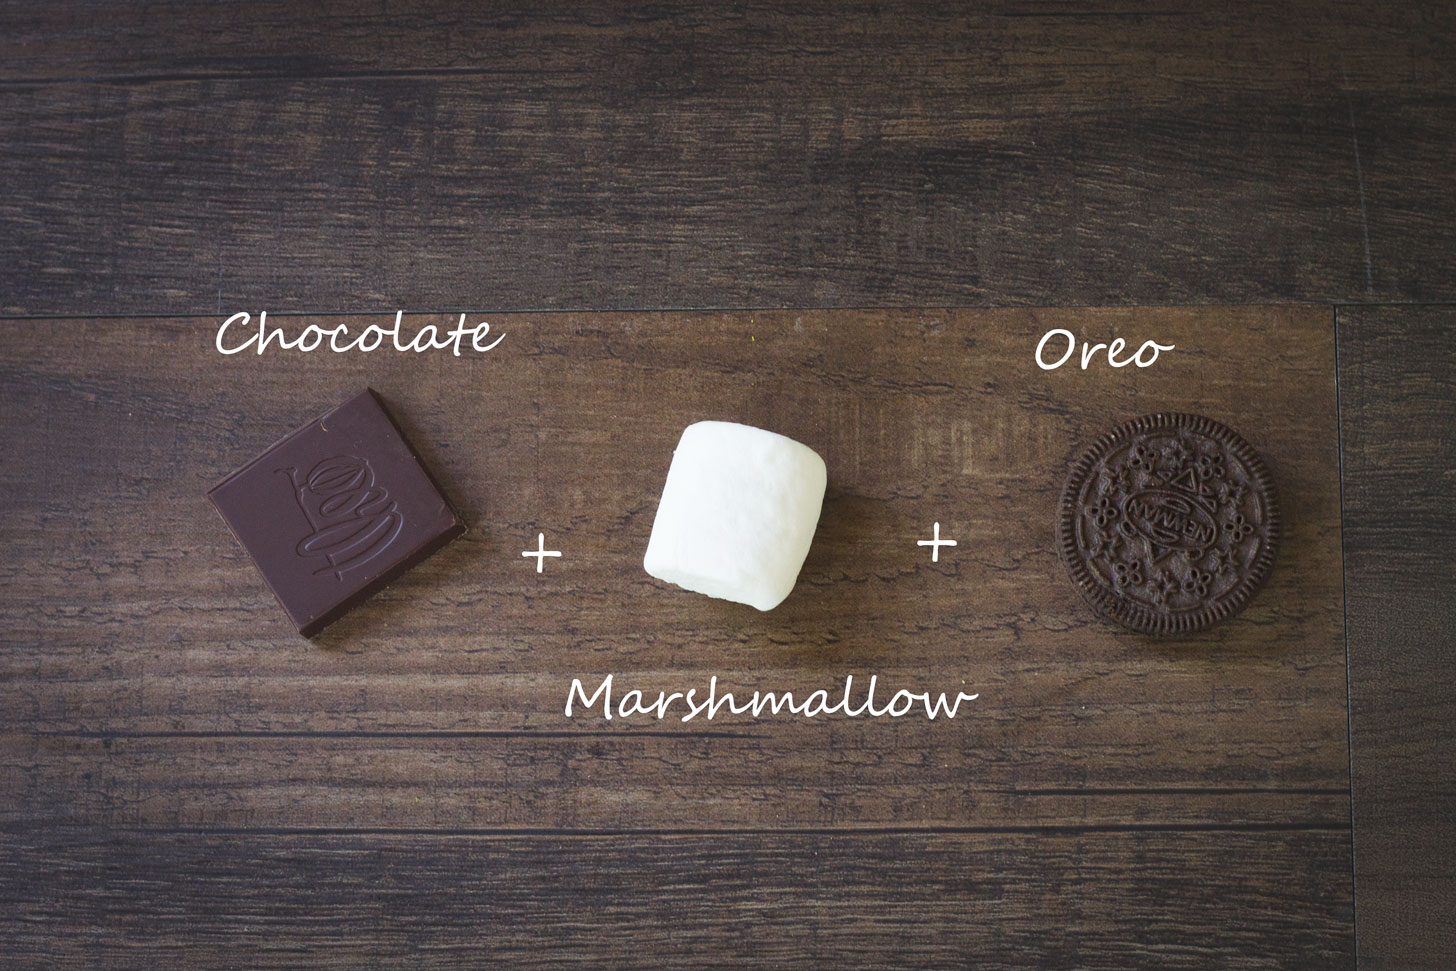 Chocolate, marshmallow, and oreo.